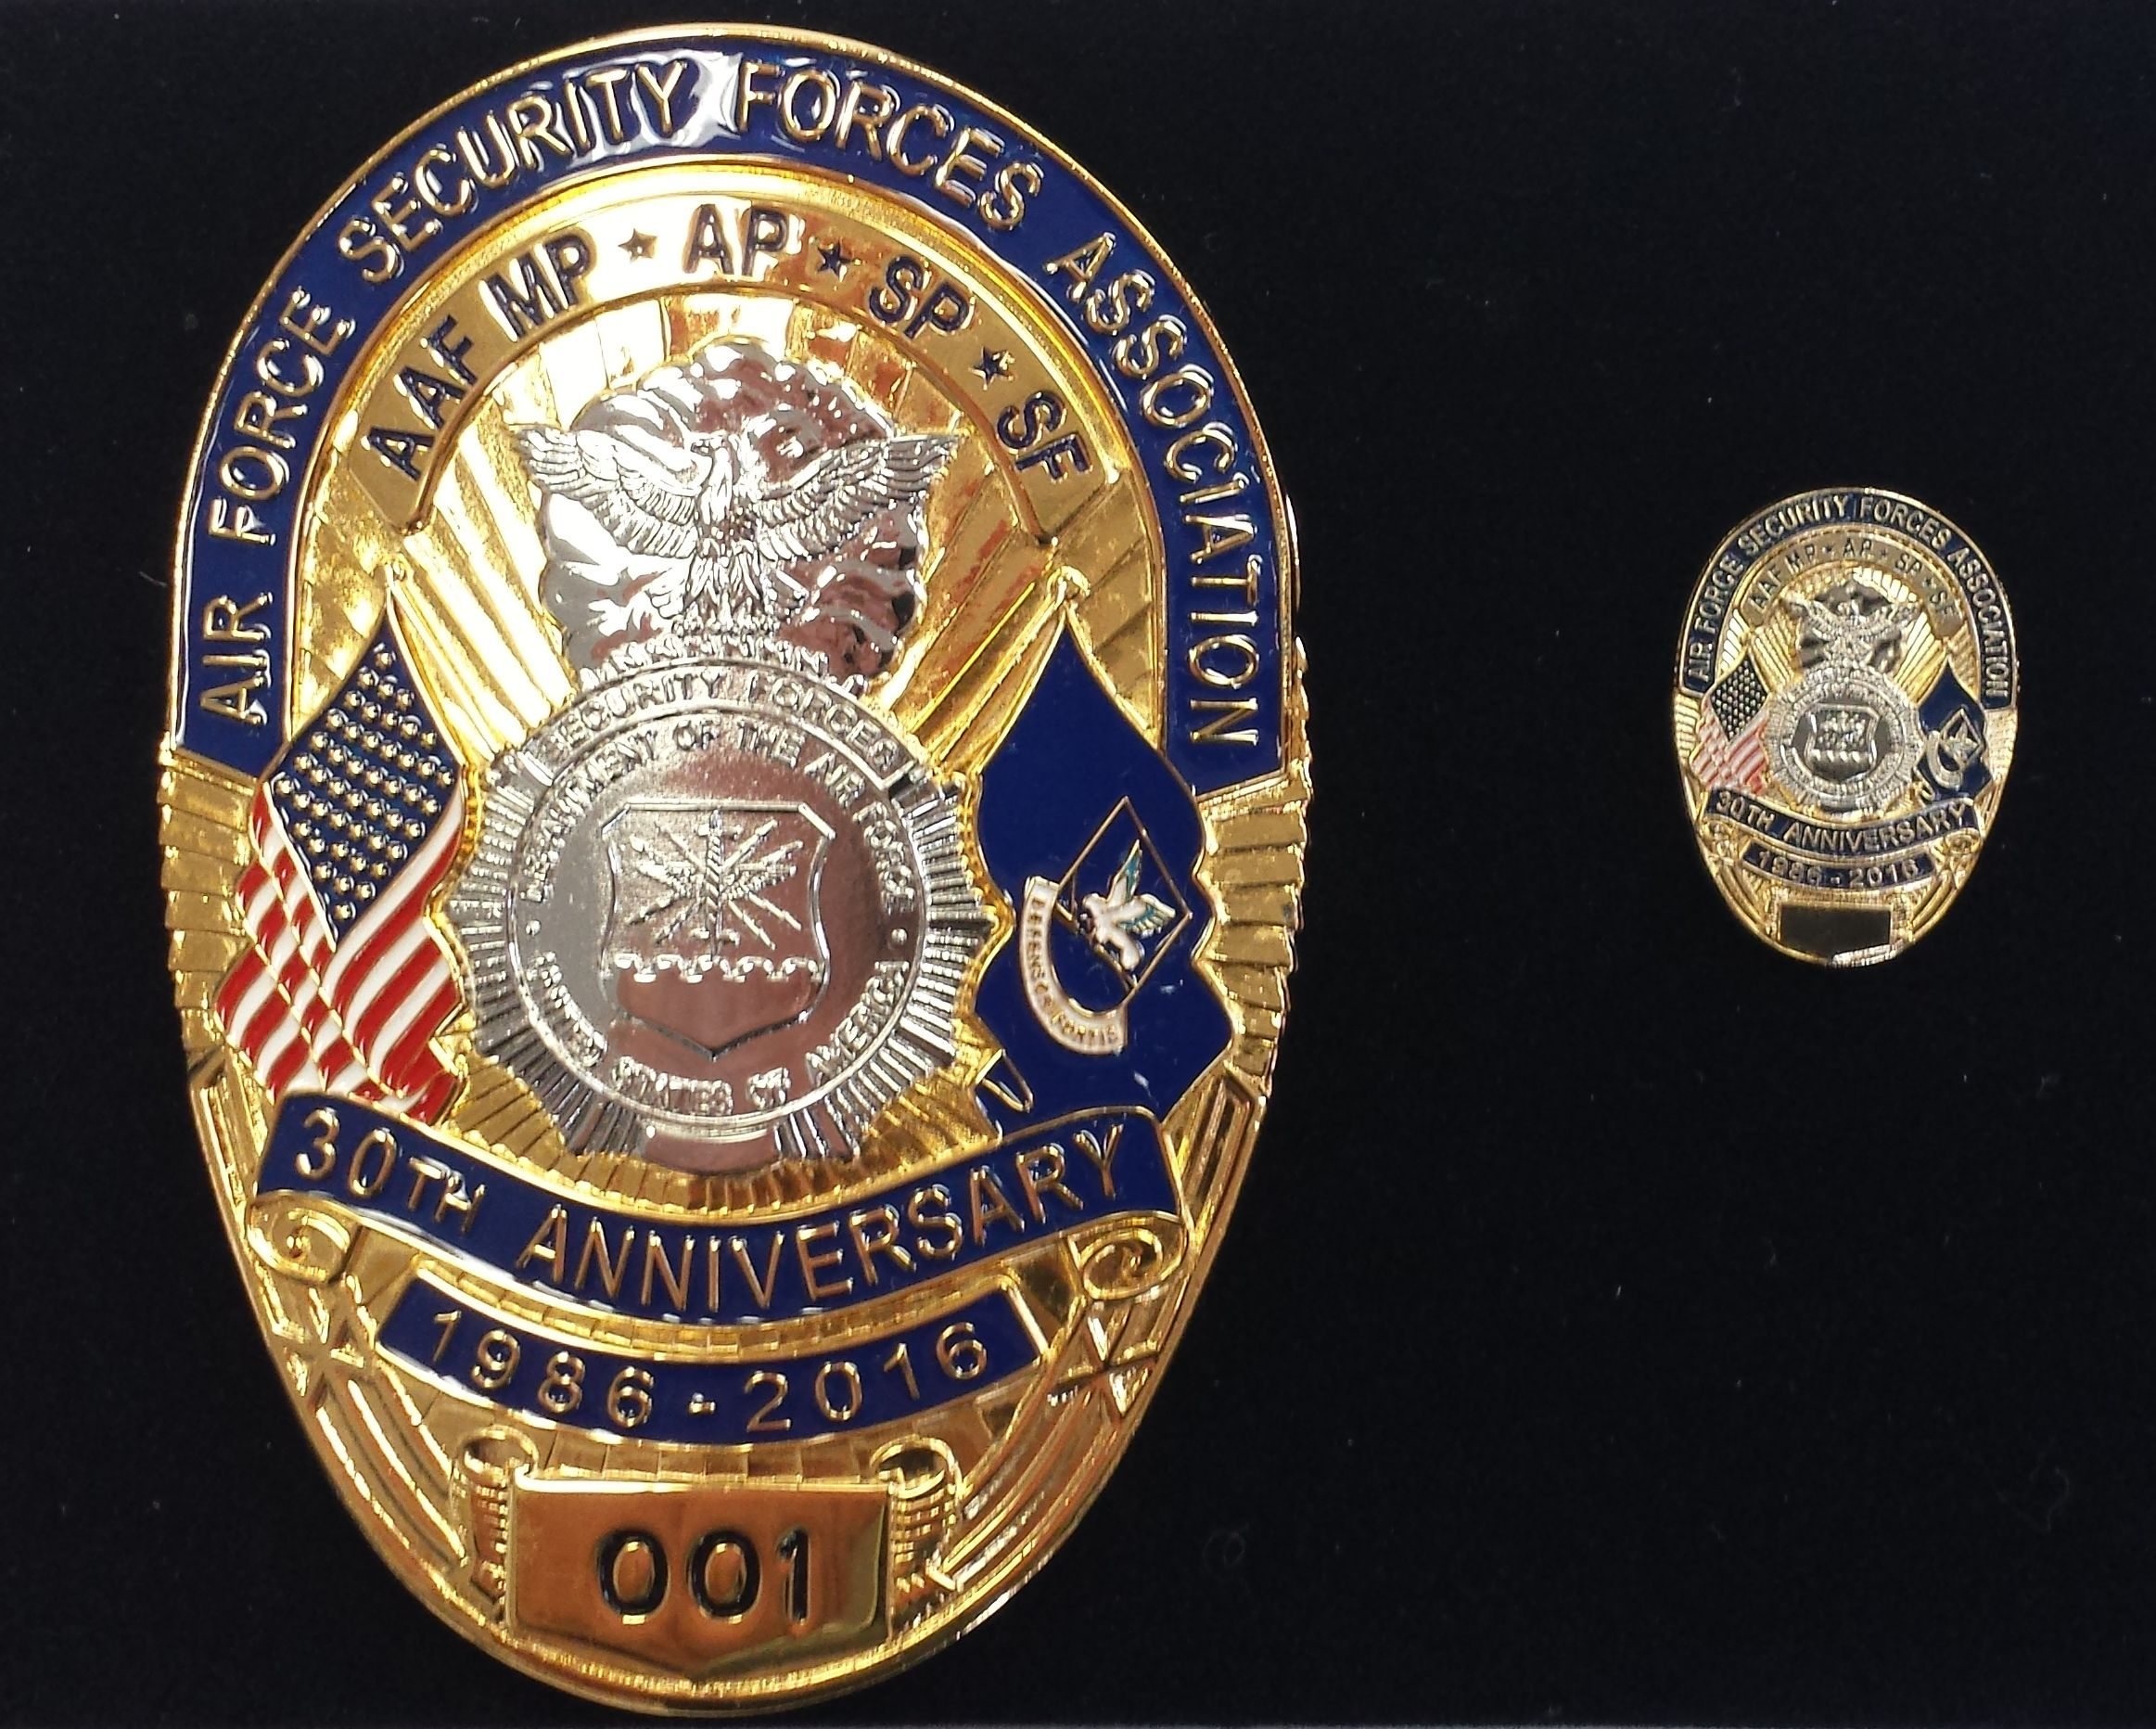 Anniversary Commemorative Badge that include lapel pin